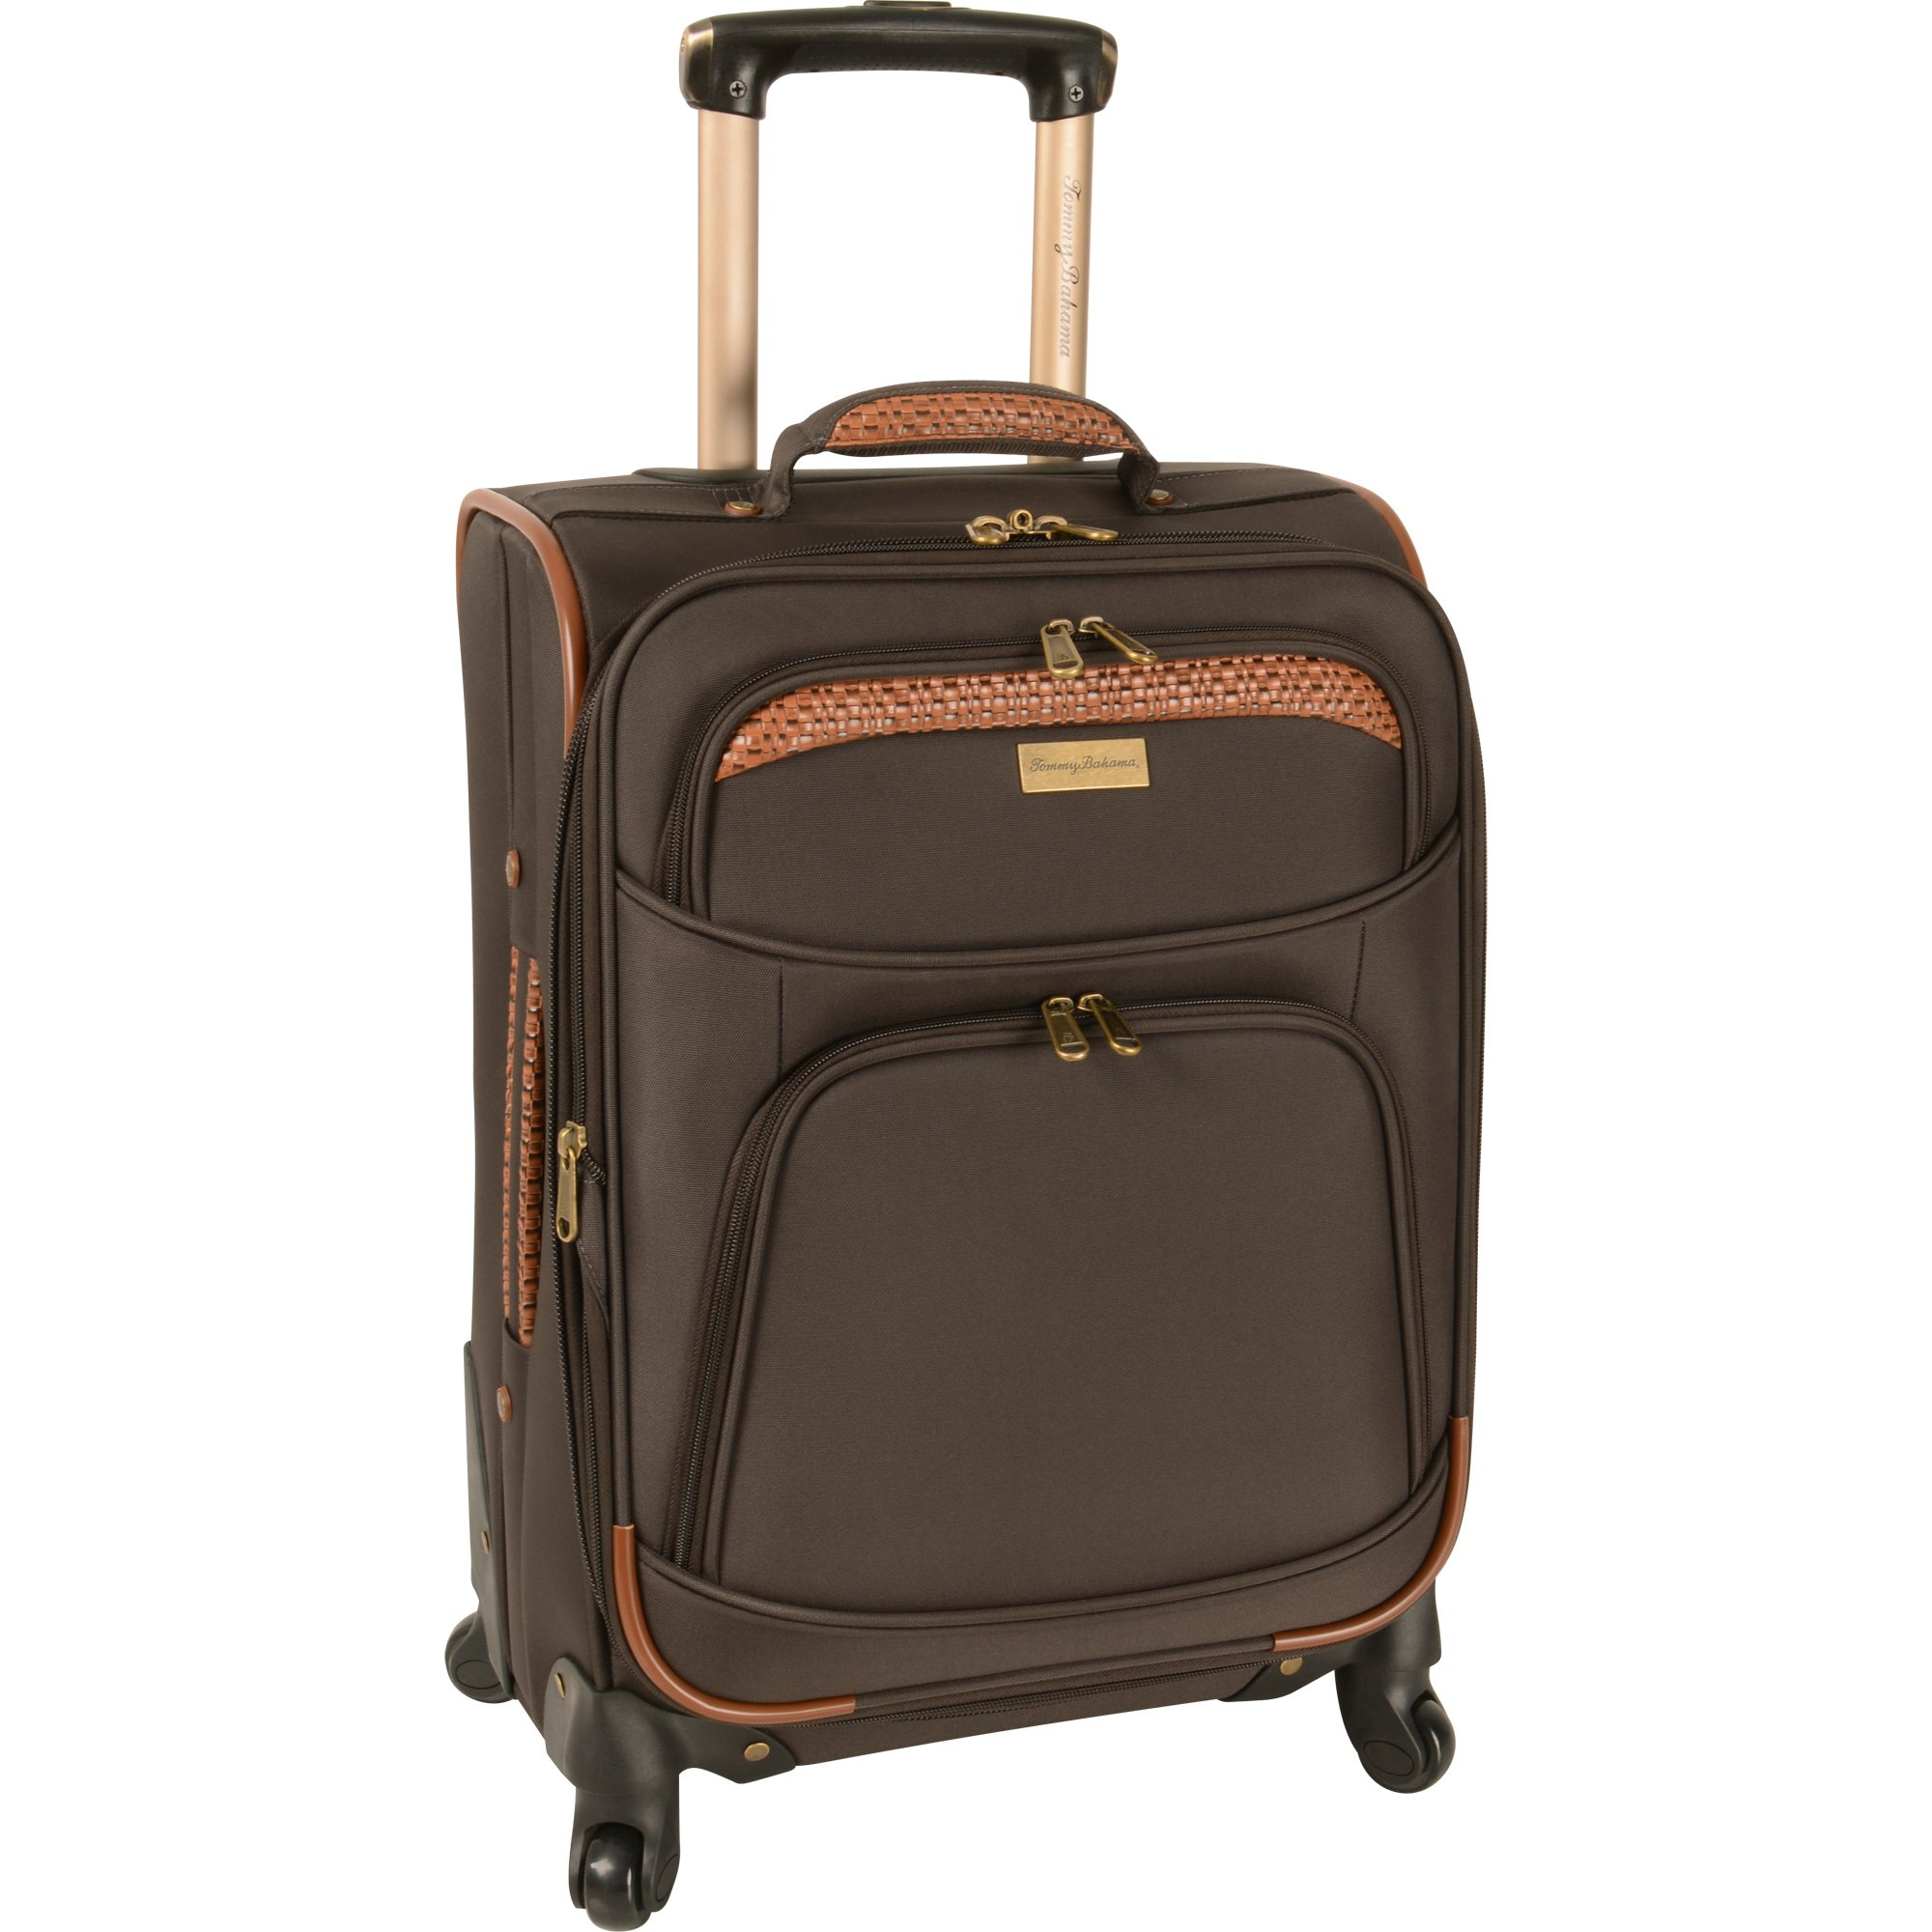 Tommy Bahama Santorini20 Inch Expandable Spinner, Dark Brown/Cognac, One Size